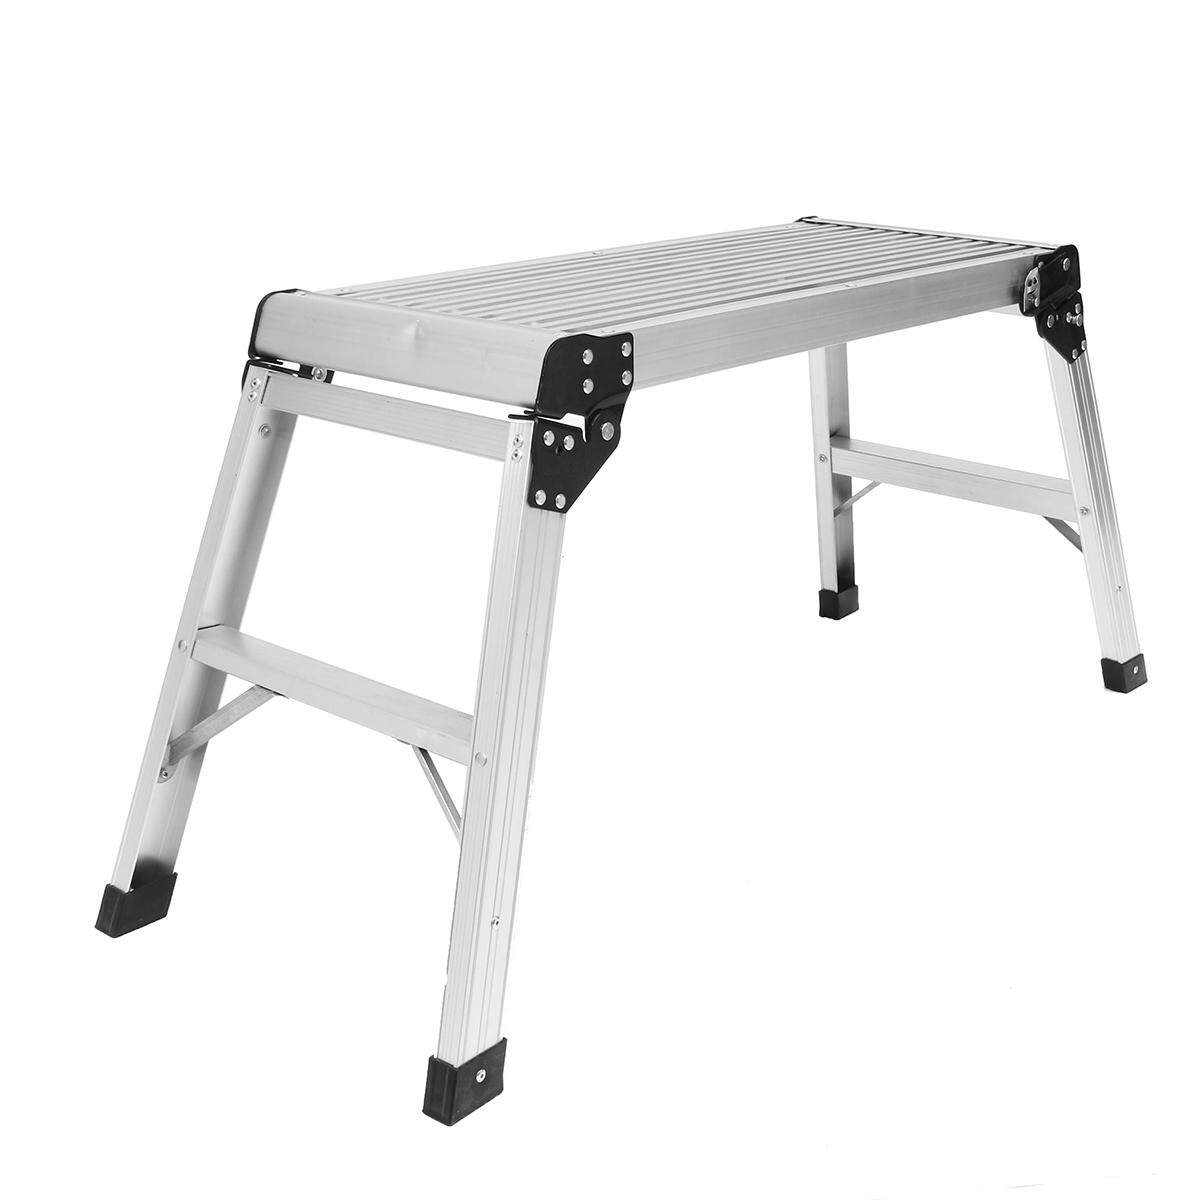 Ladder Work Platform Aluminium Bench Folding Elevated Step Metal Painting Car